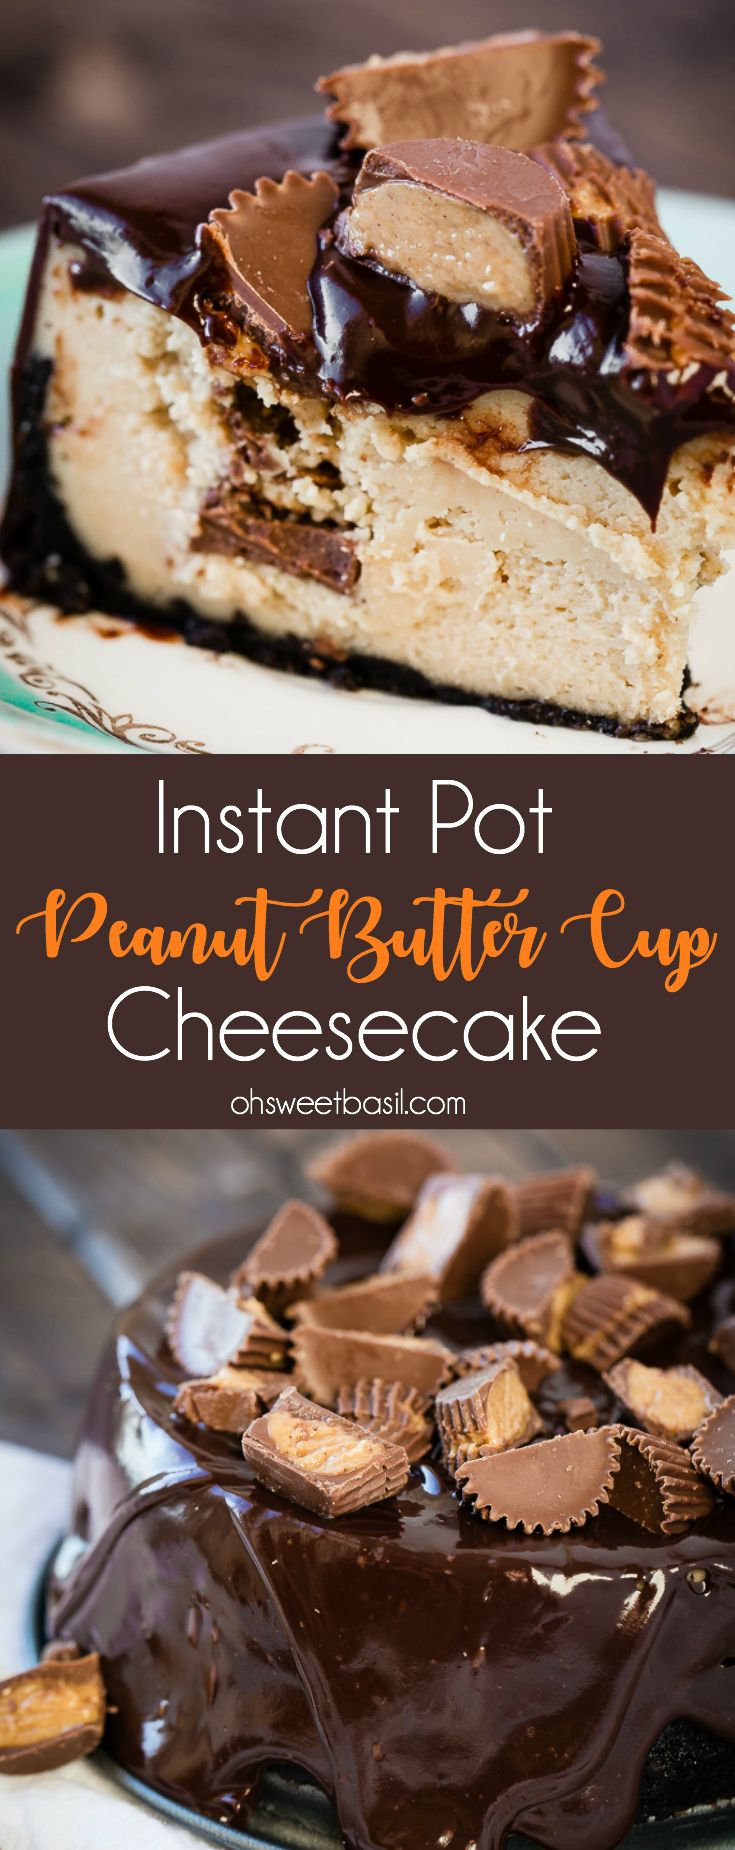 Dessert recipes for the instant pot are amazing! This instant pot peanut butter cup cheesecake has an oreo crust as well so dig in!